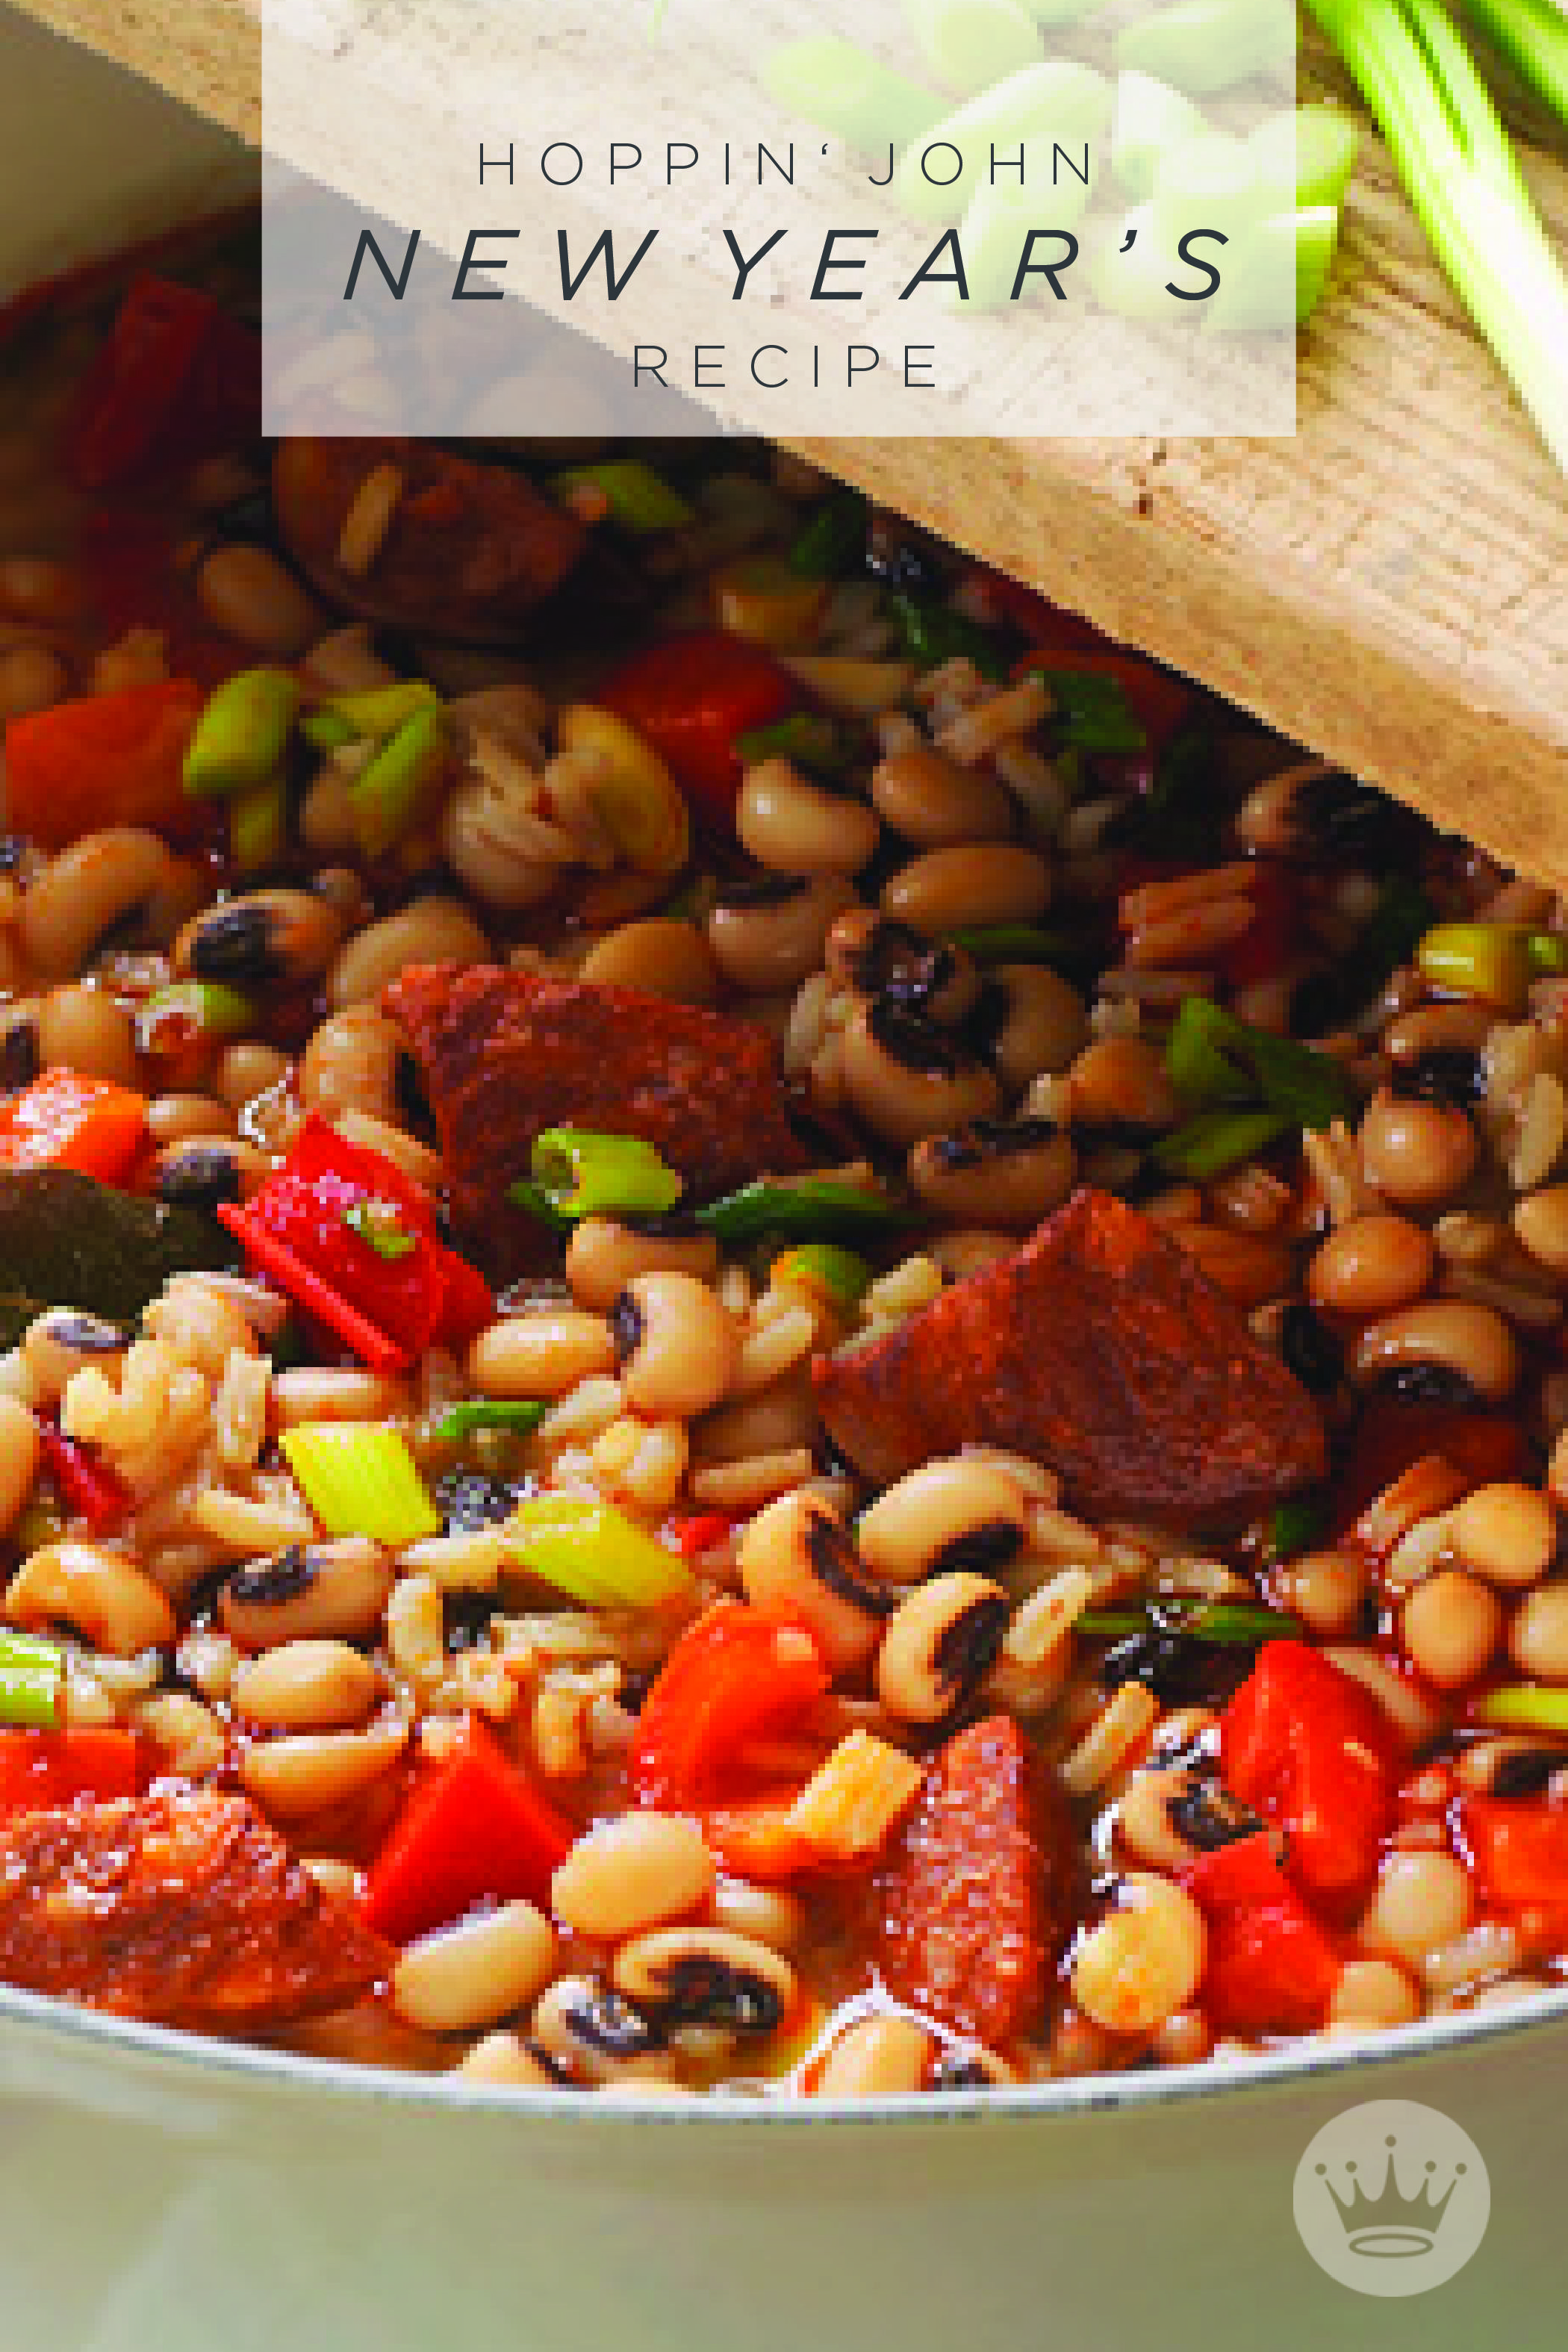 Hoppin' John Recipe Hoppin john, Recipes, Hoppin john